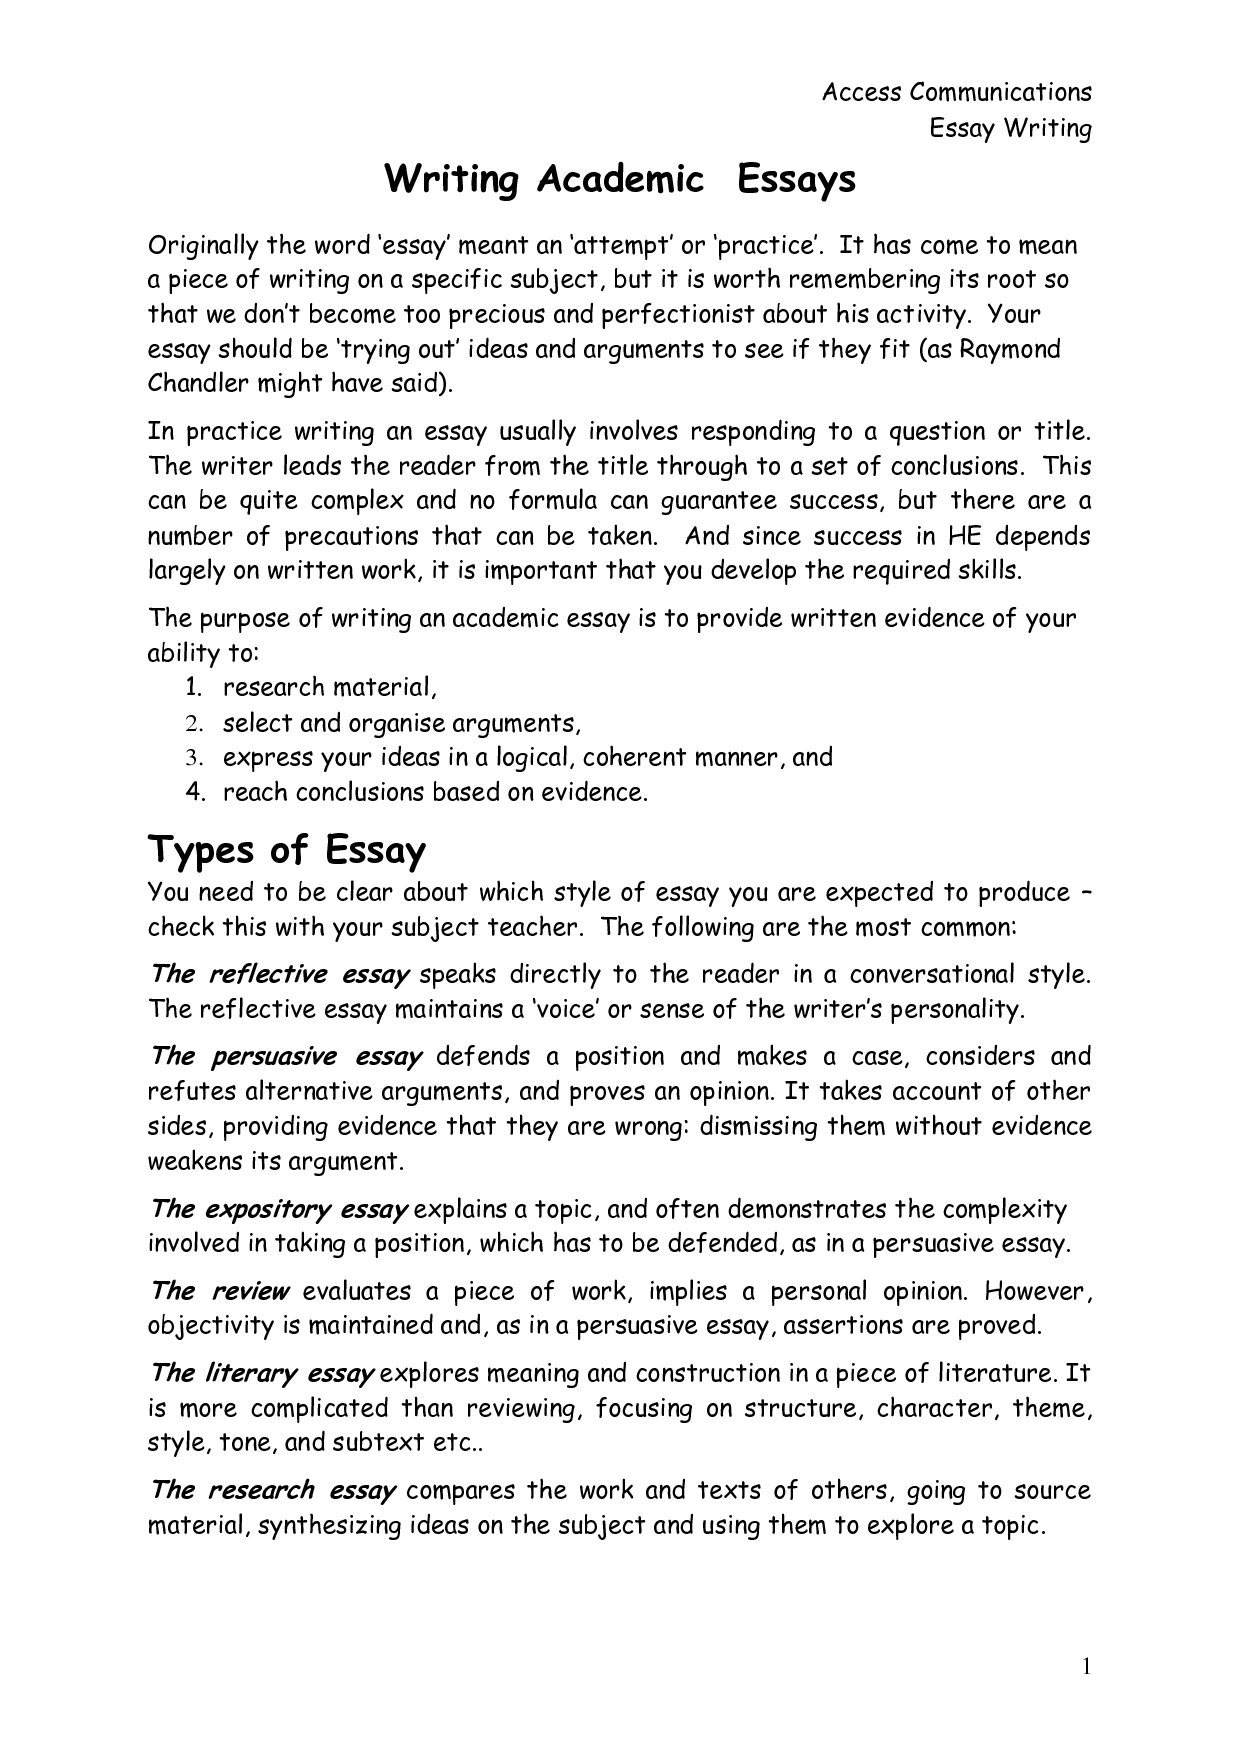 019 Write My Essay For Me Example Surprising Discount Code Cheap Please Full